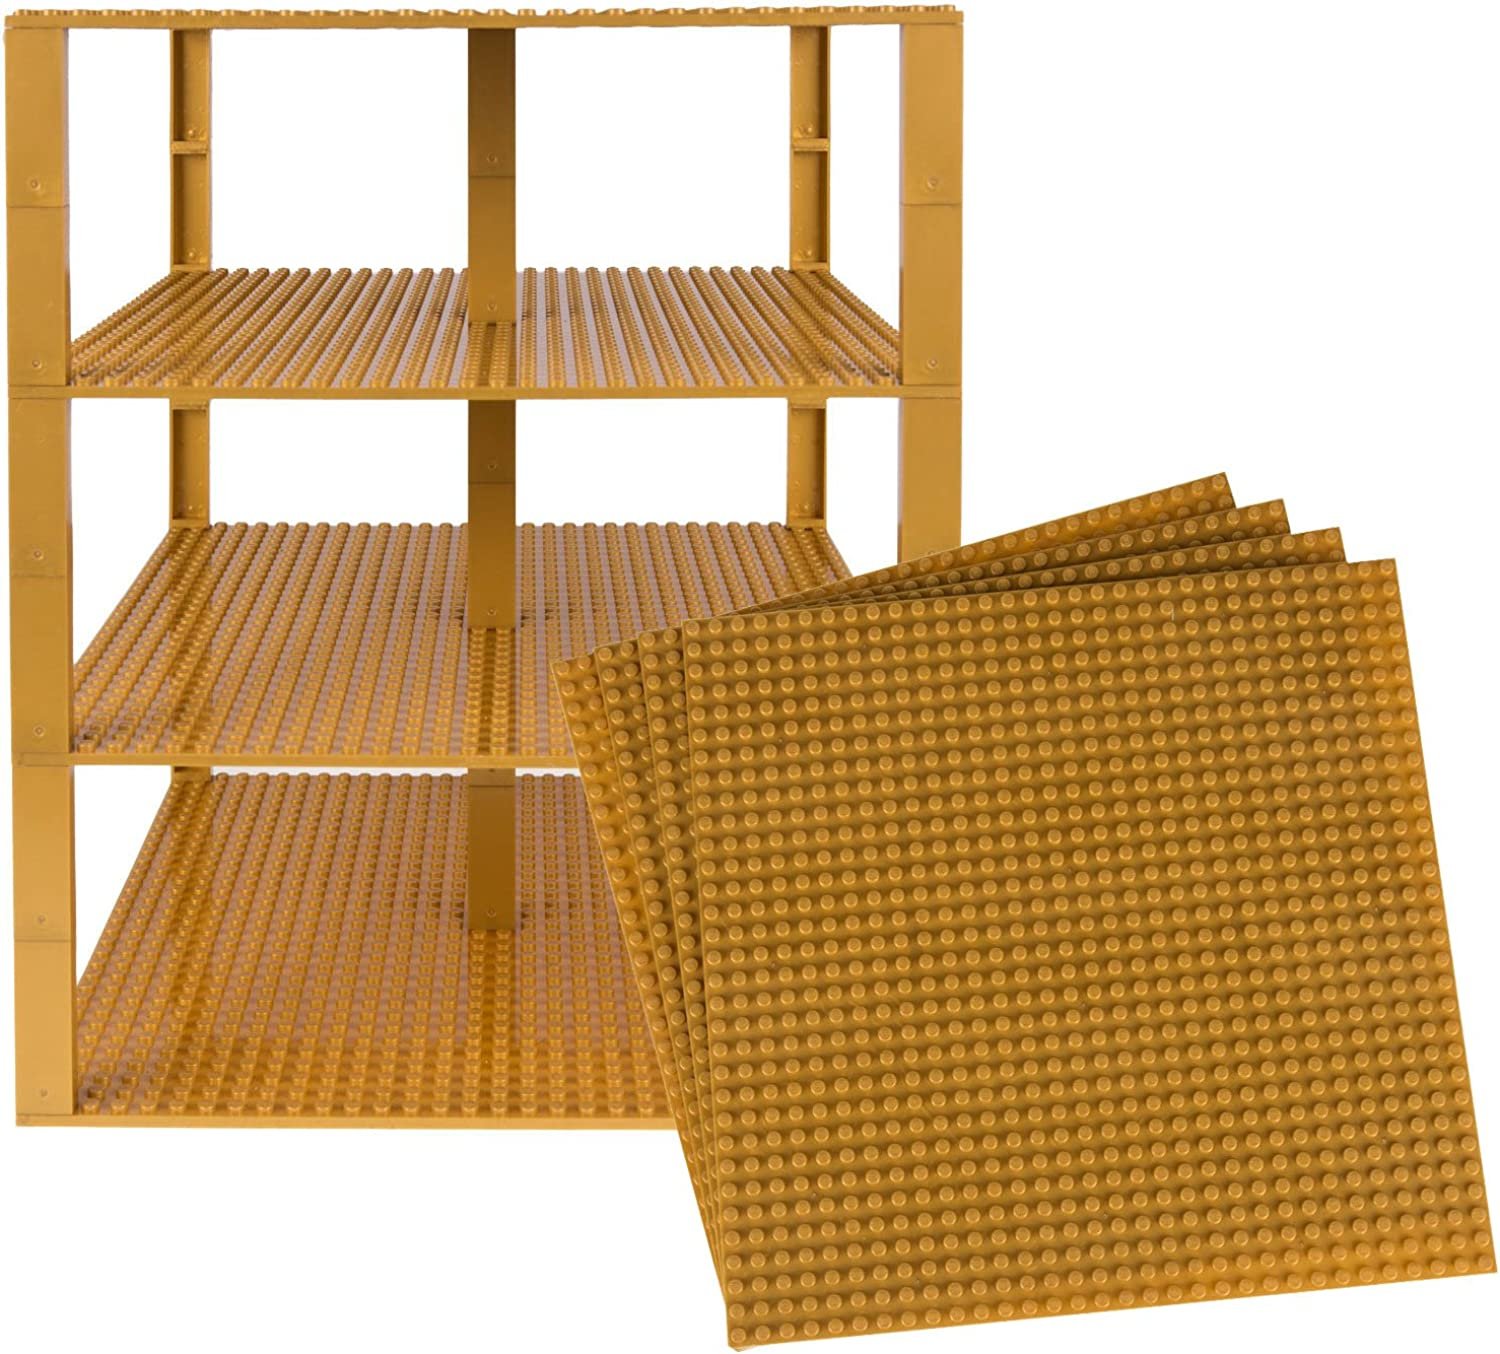 Classic Baseplates 10  x 10  Brik Tower by Strictly Briks   100% Compatible with All Major Brands   Building Bricks for Towers and More   4 gold Stackable Base Plates & 30 Stackers